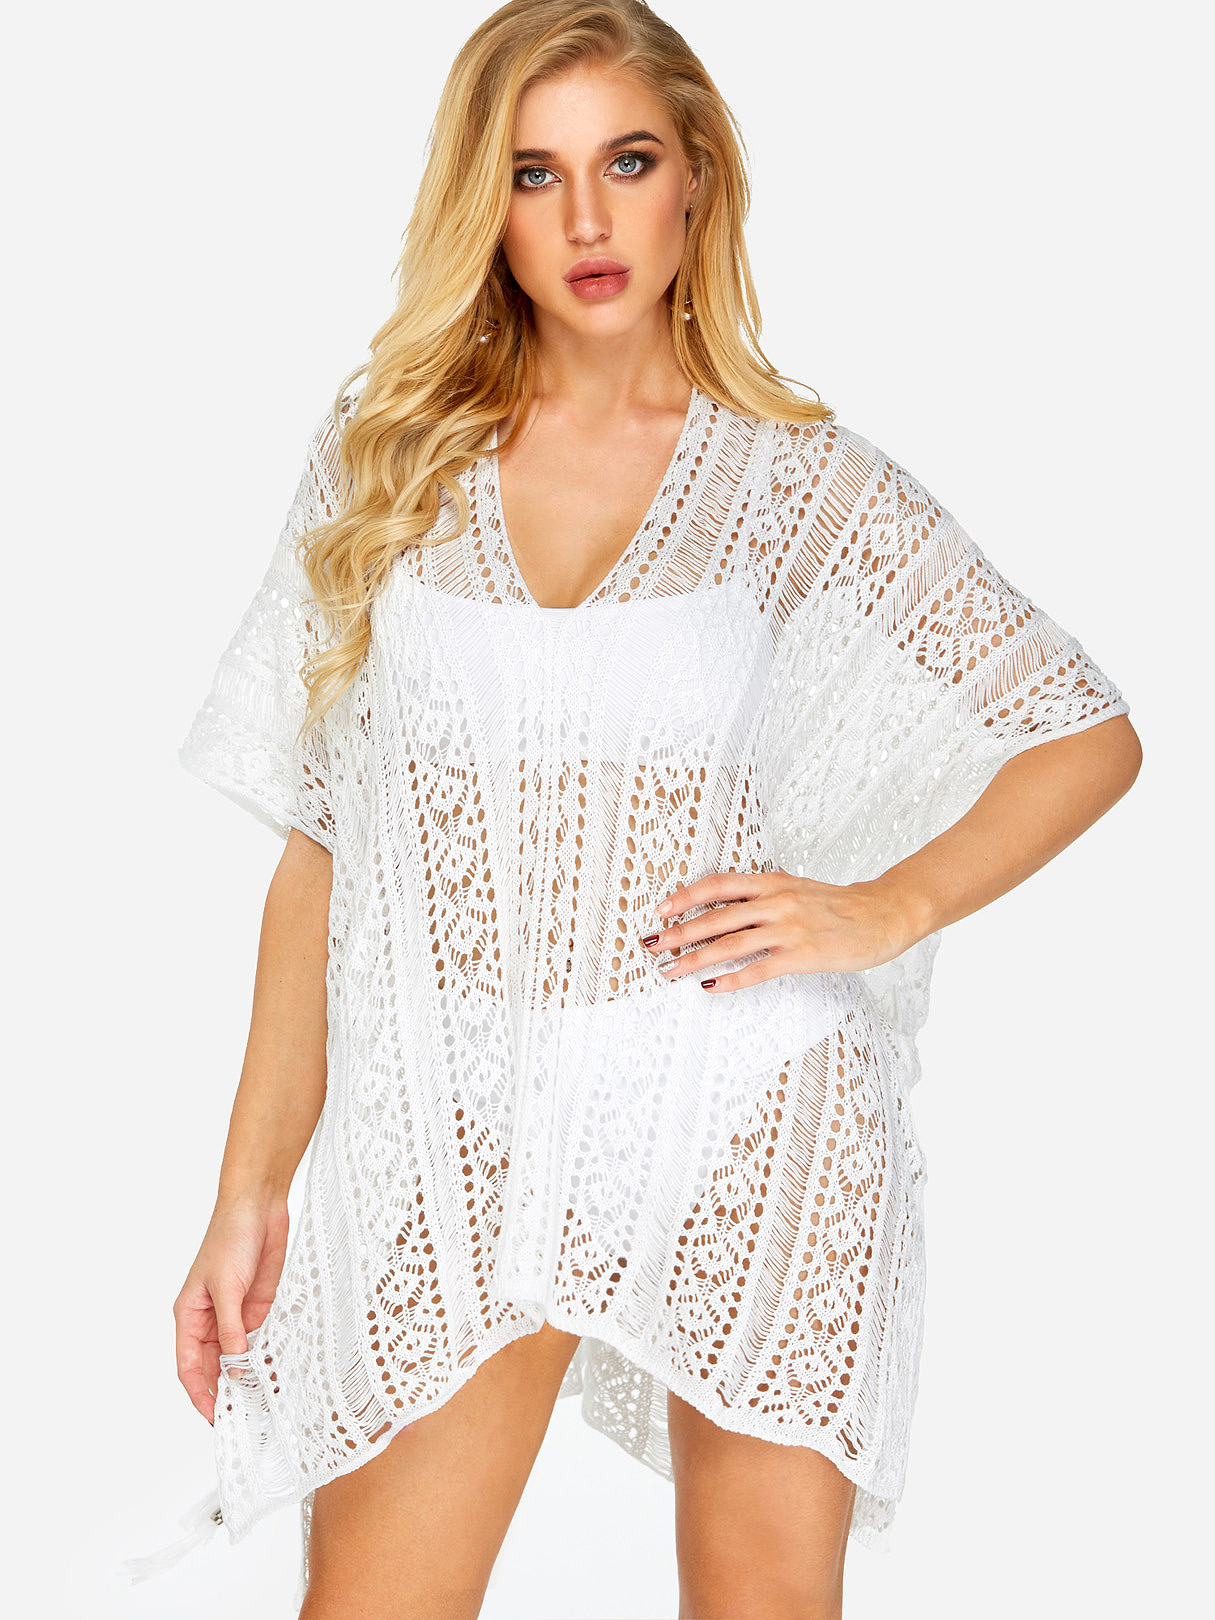 Delicate Crochet Hollow Overlay Design Top in White TOPS  maillots de bain lc_one_size Yoins